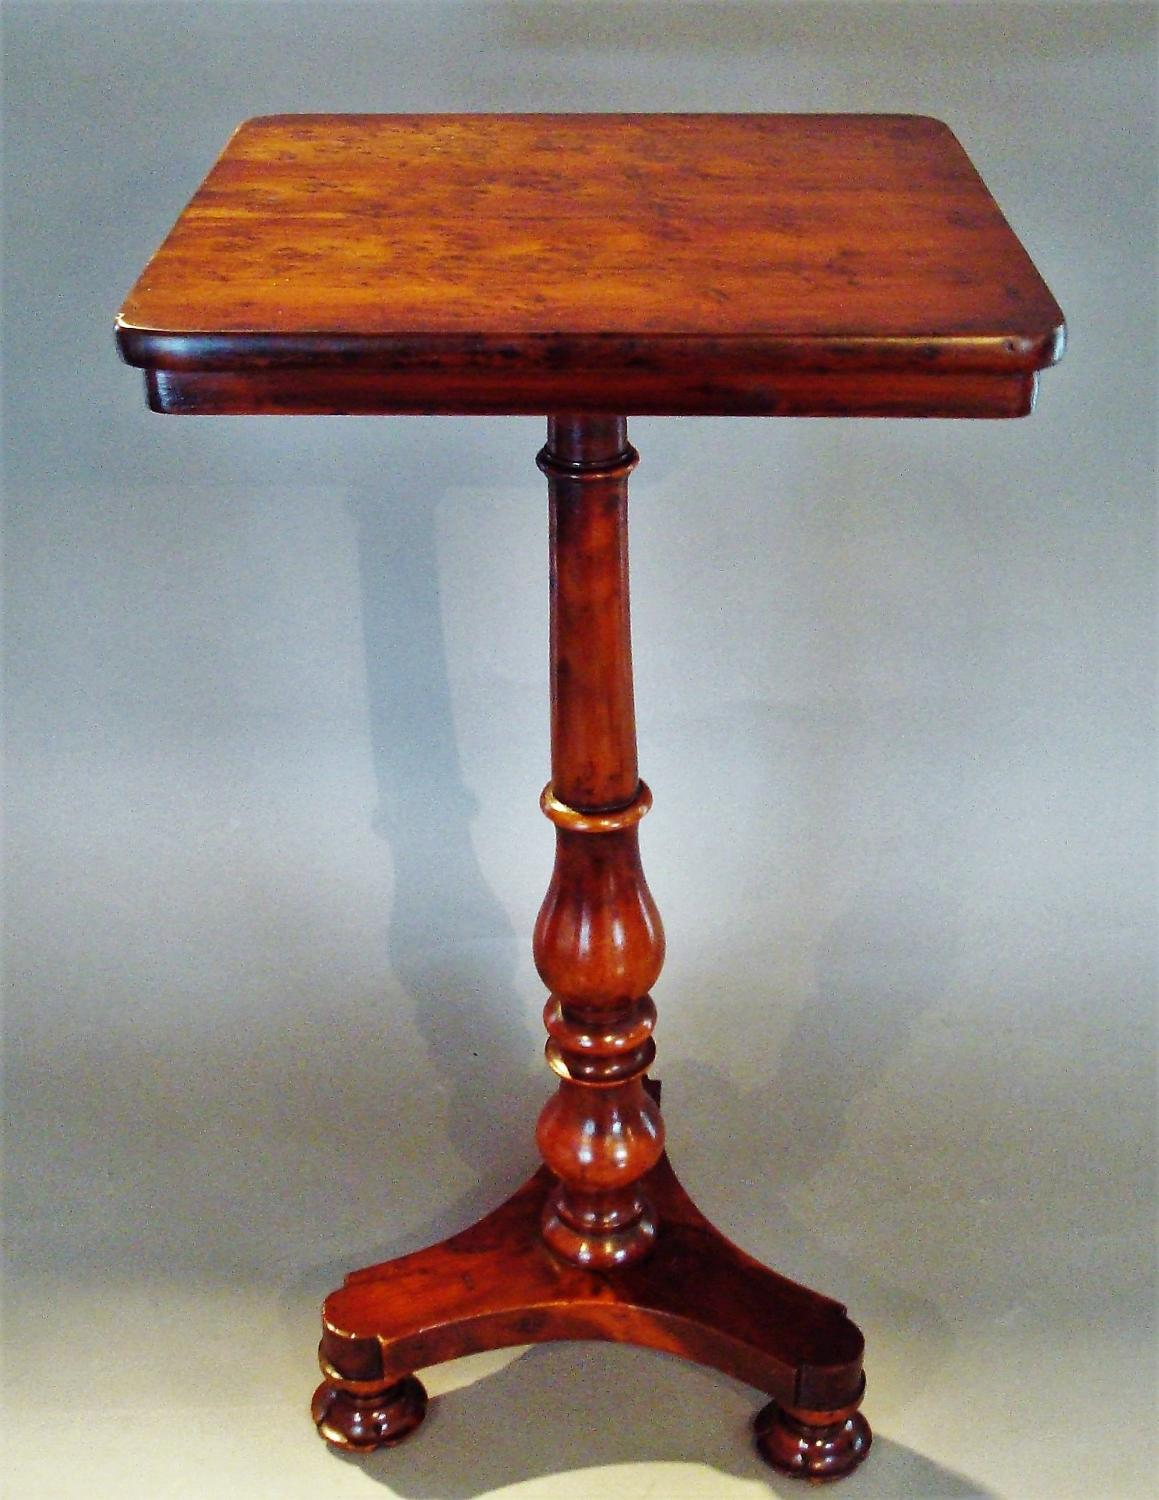 Regency yew wood occasional table